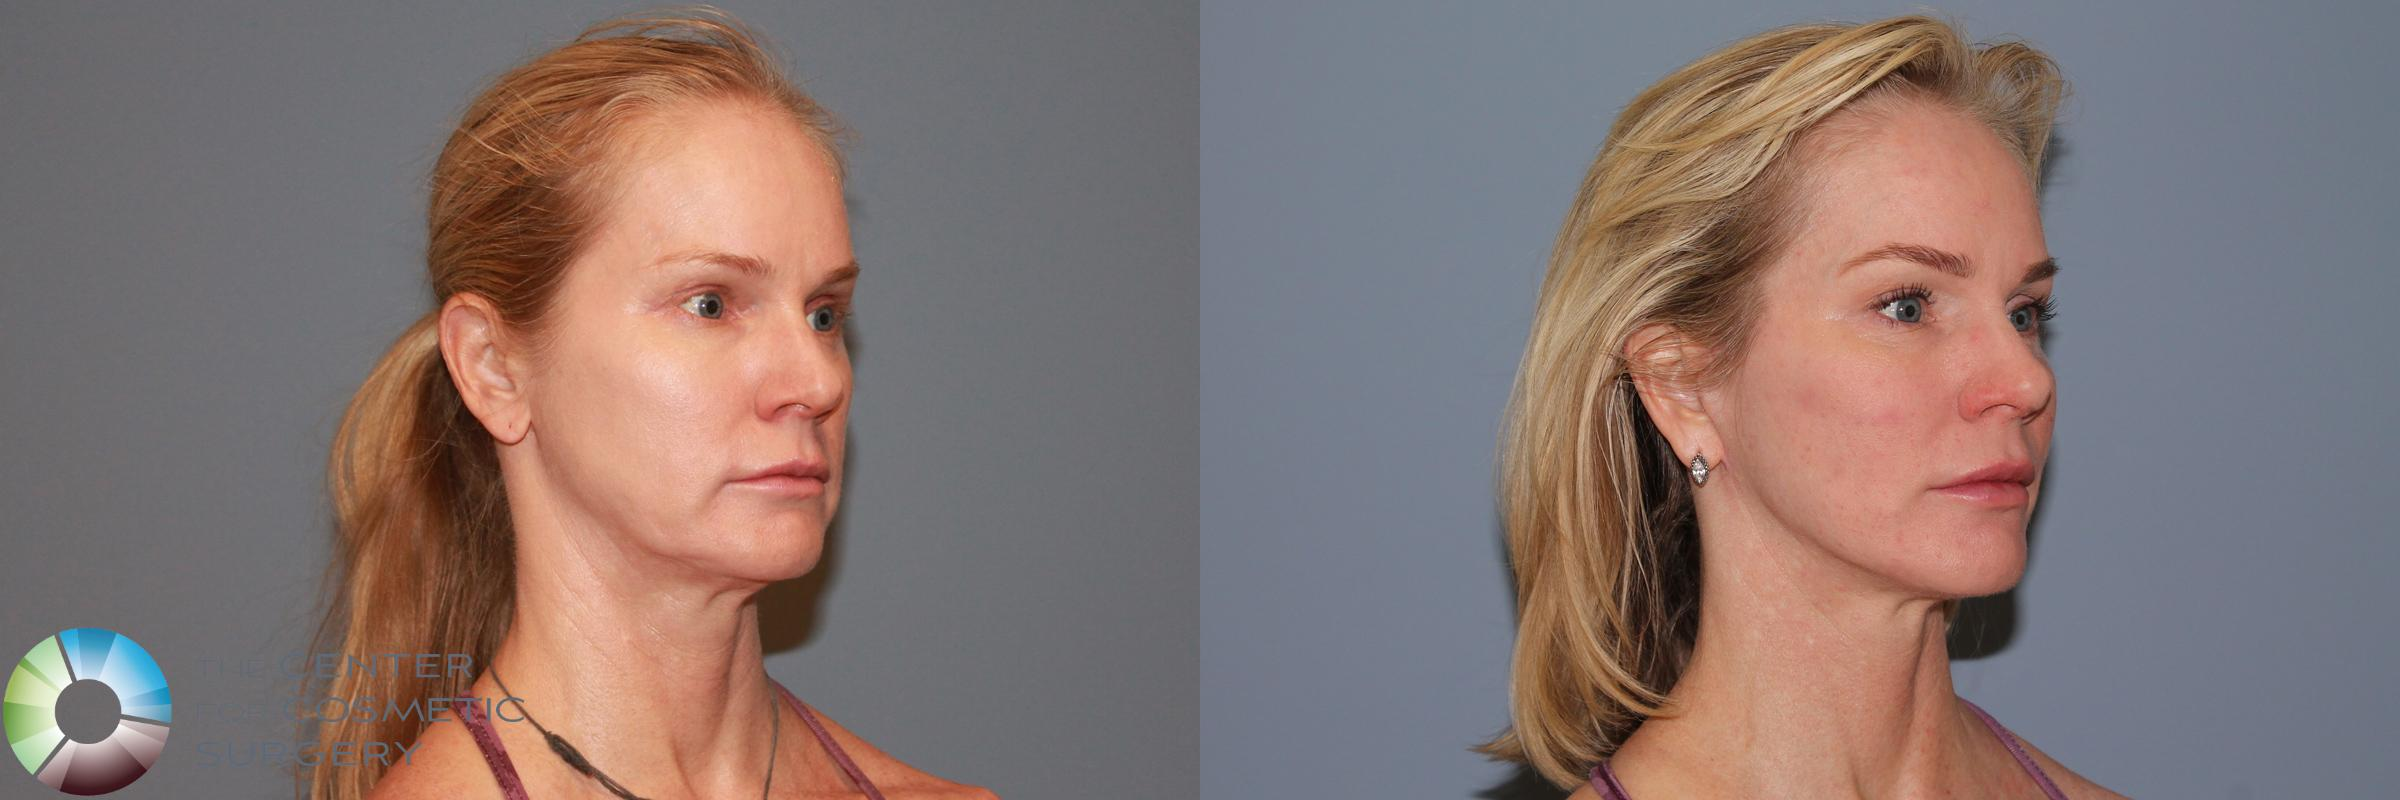 Mini Facelift Case 990 Before & After View #1 | Golden, CO | The Center for Cosmetic Surgery